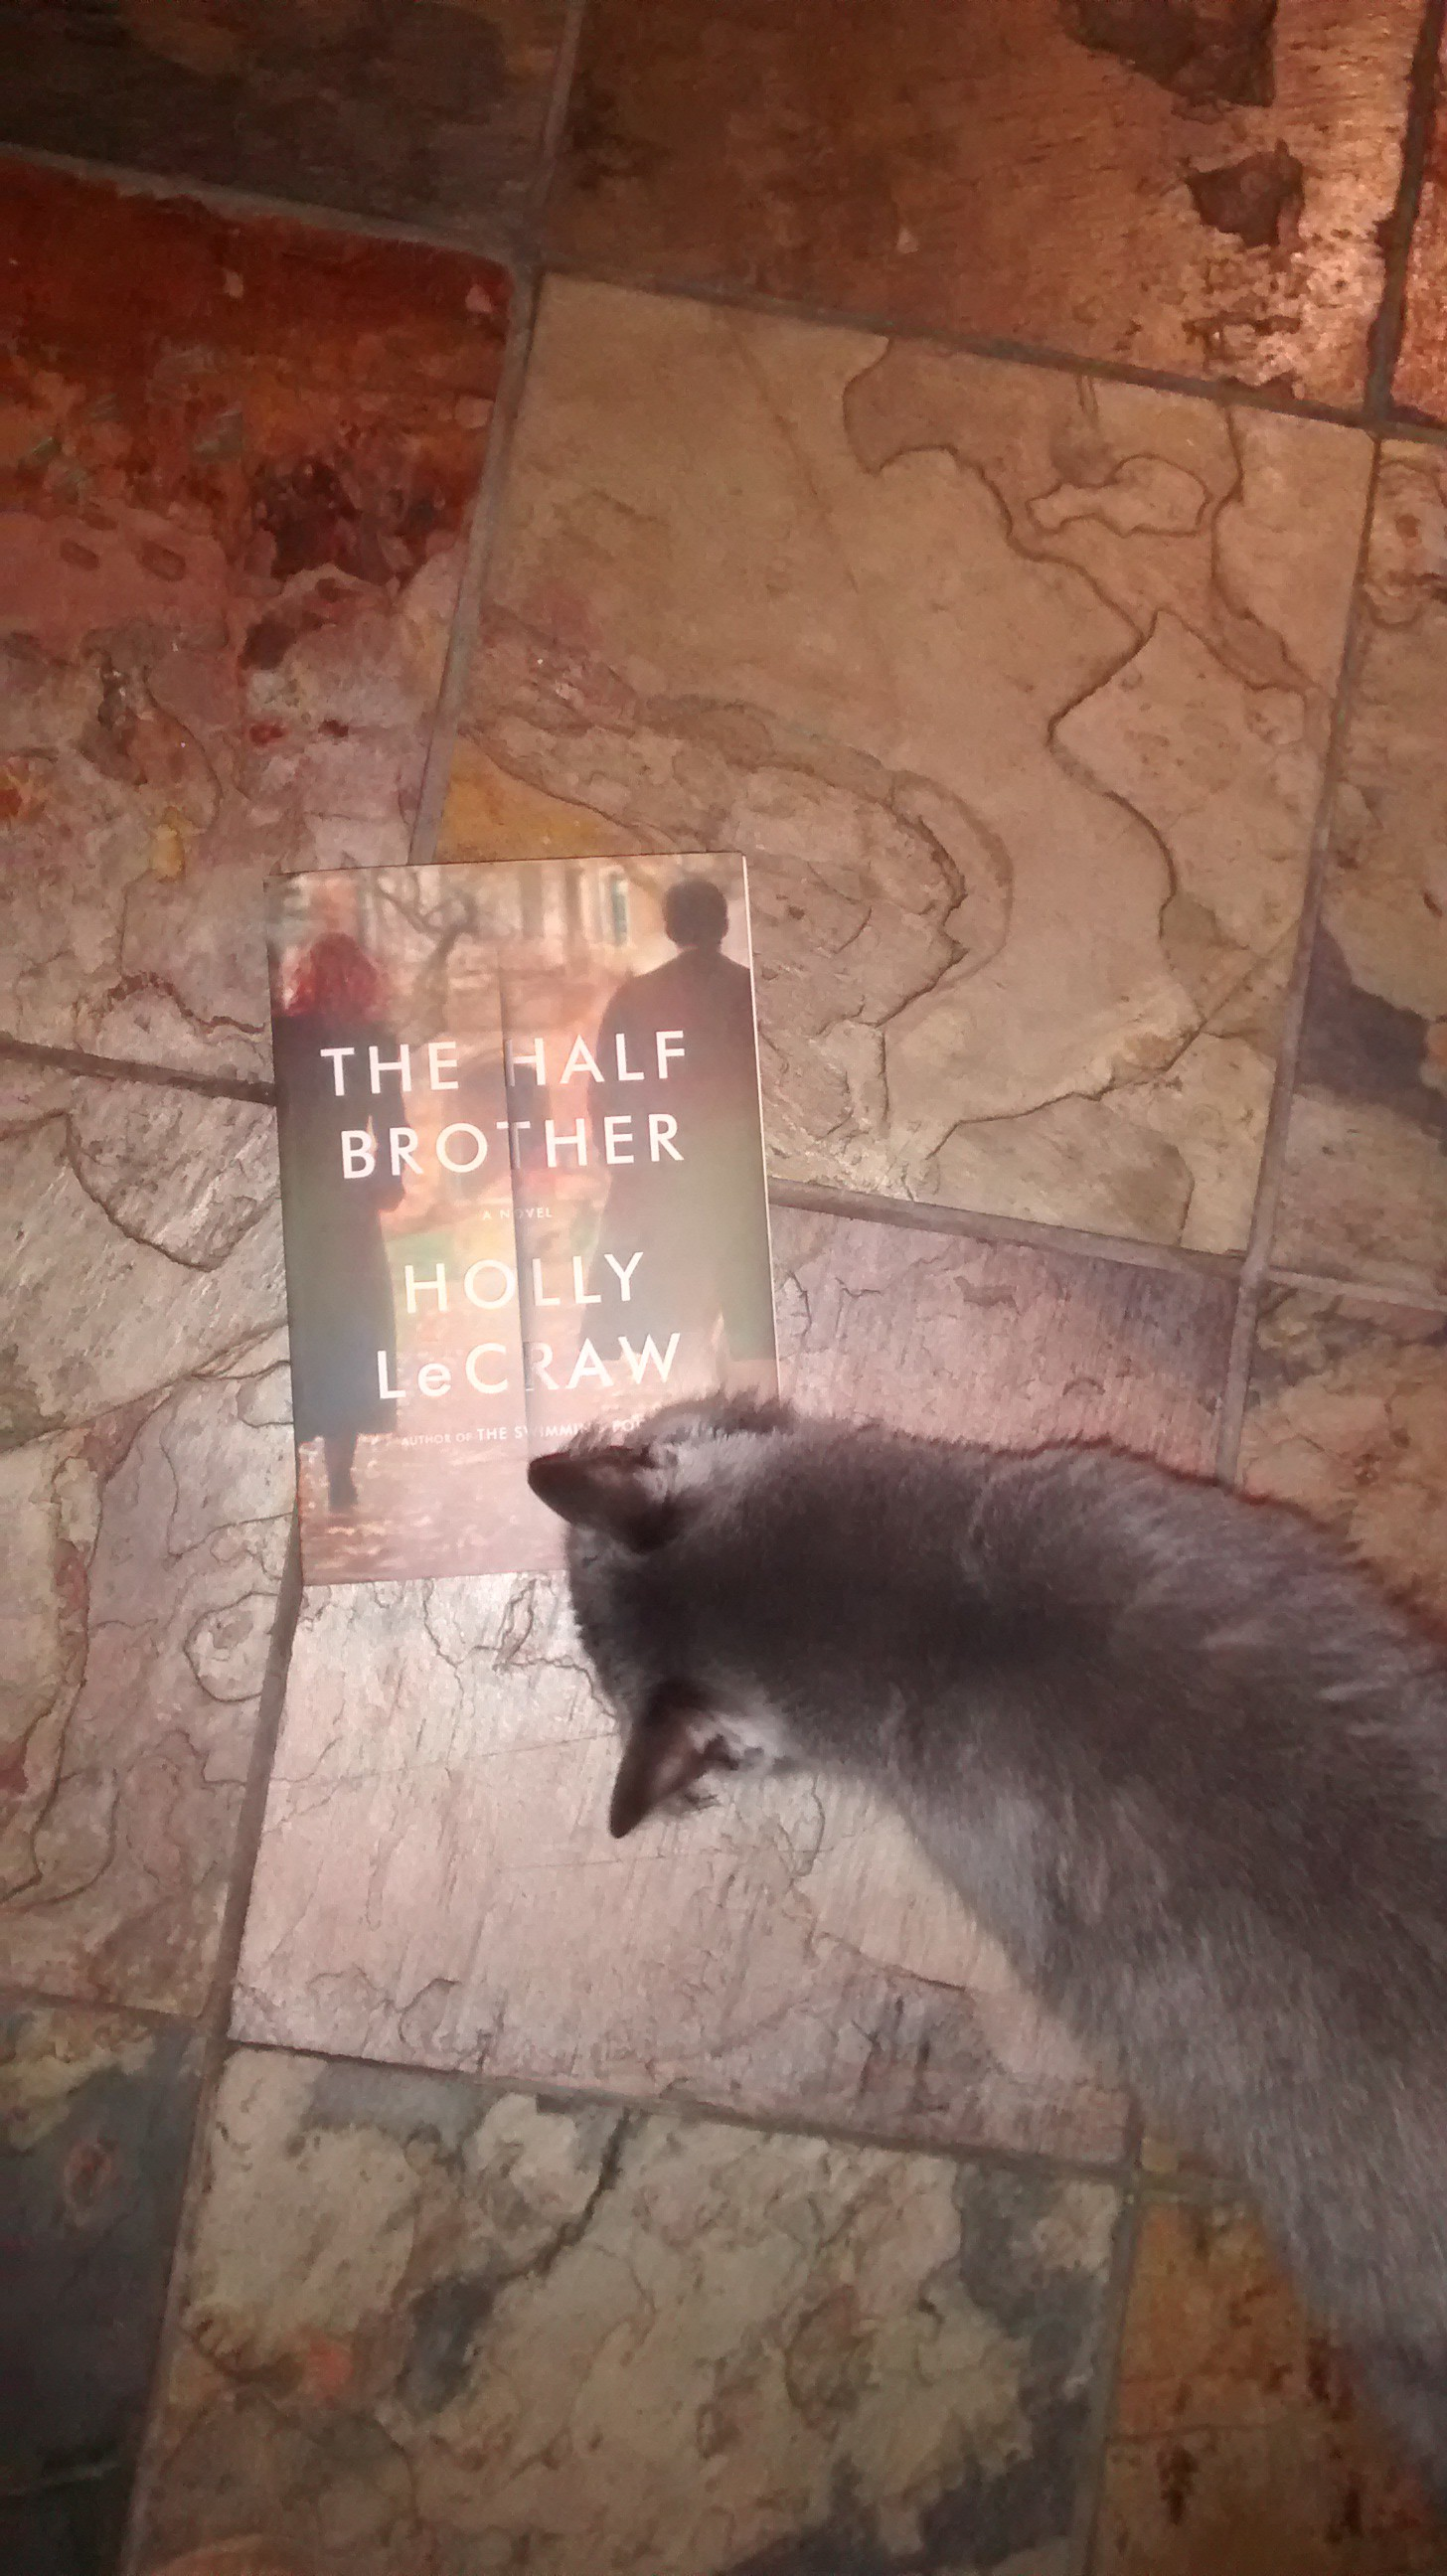 Pearl enjoyed this book just as much as I did